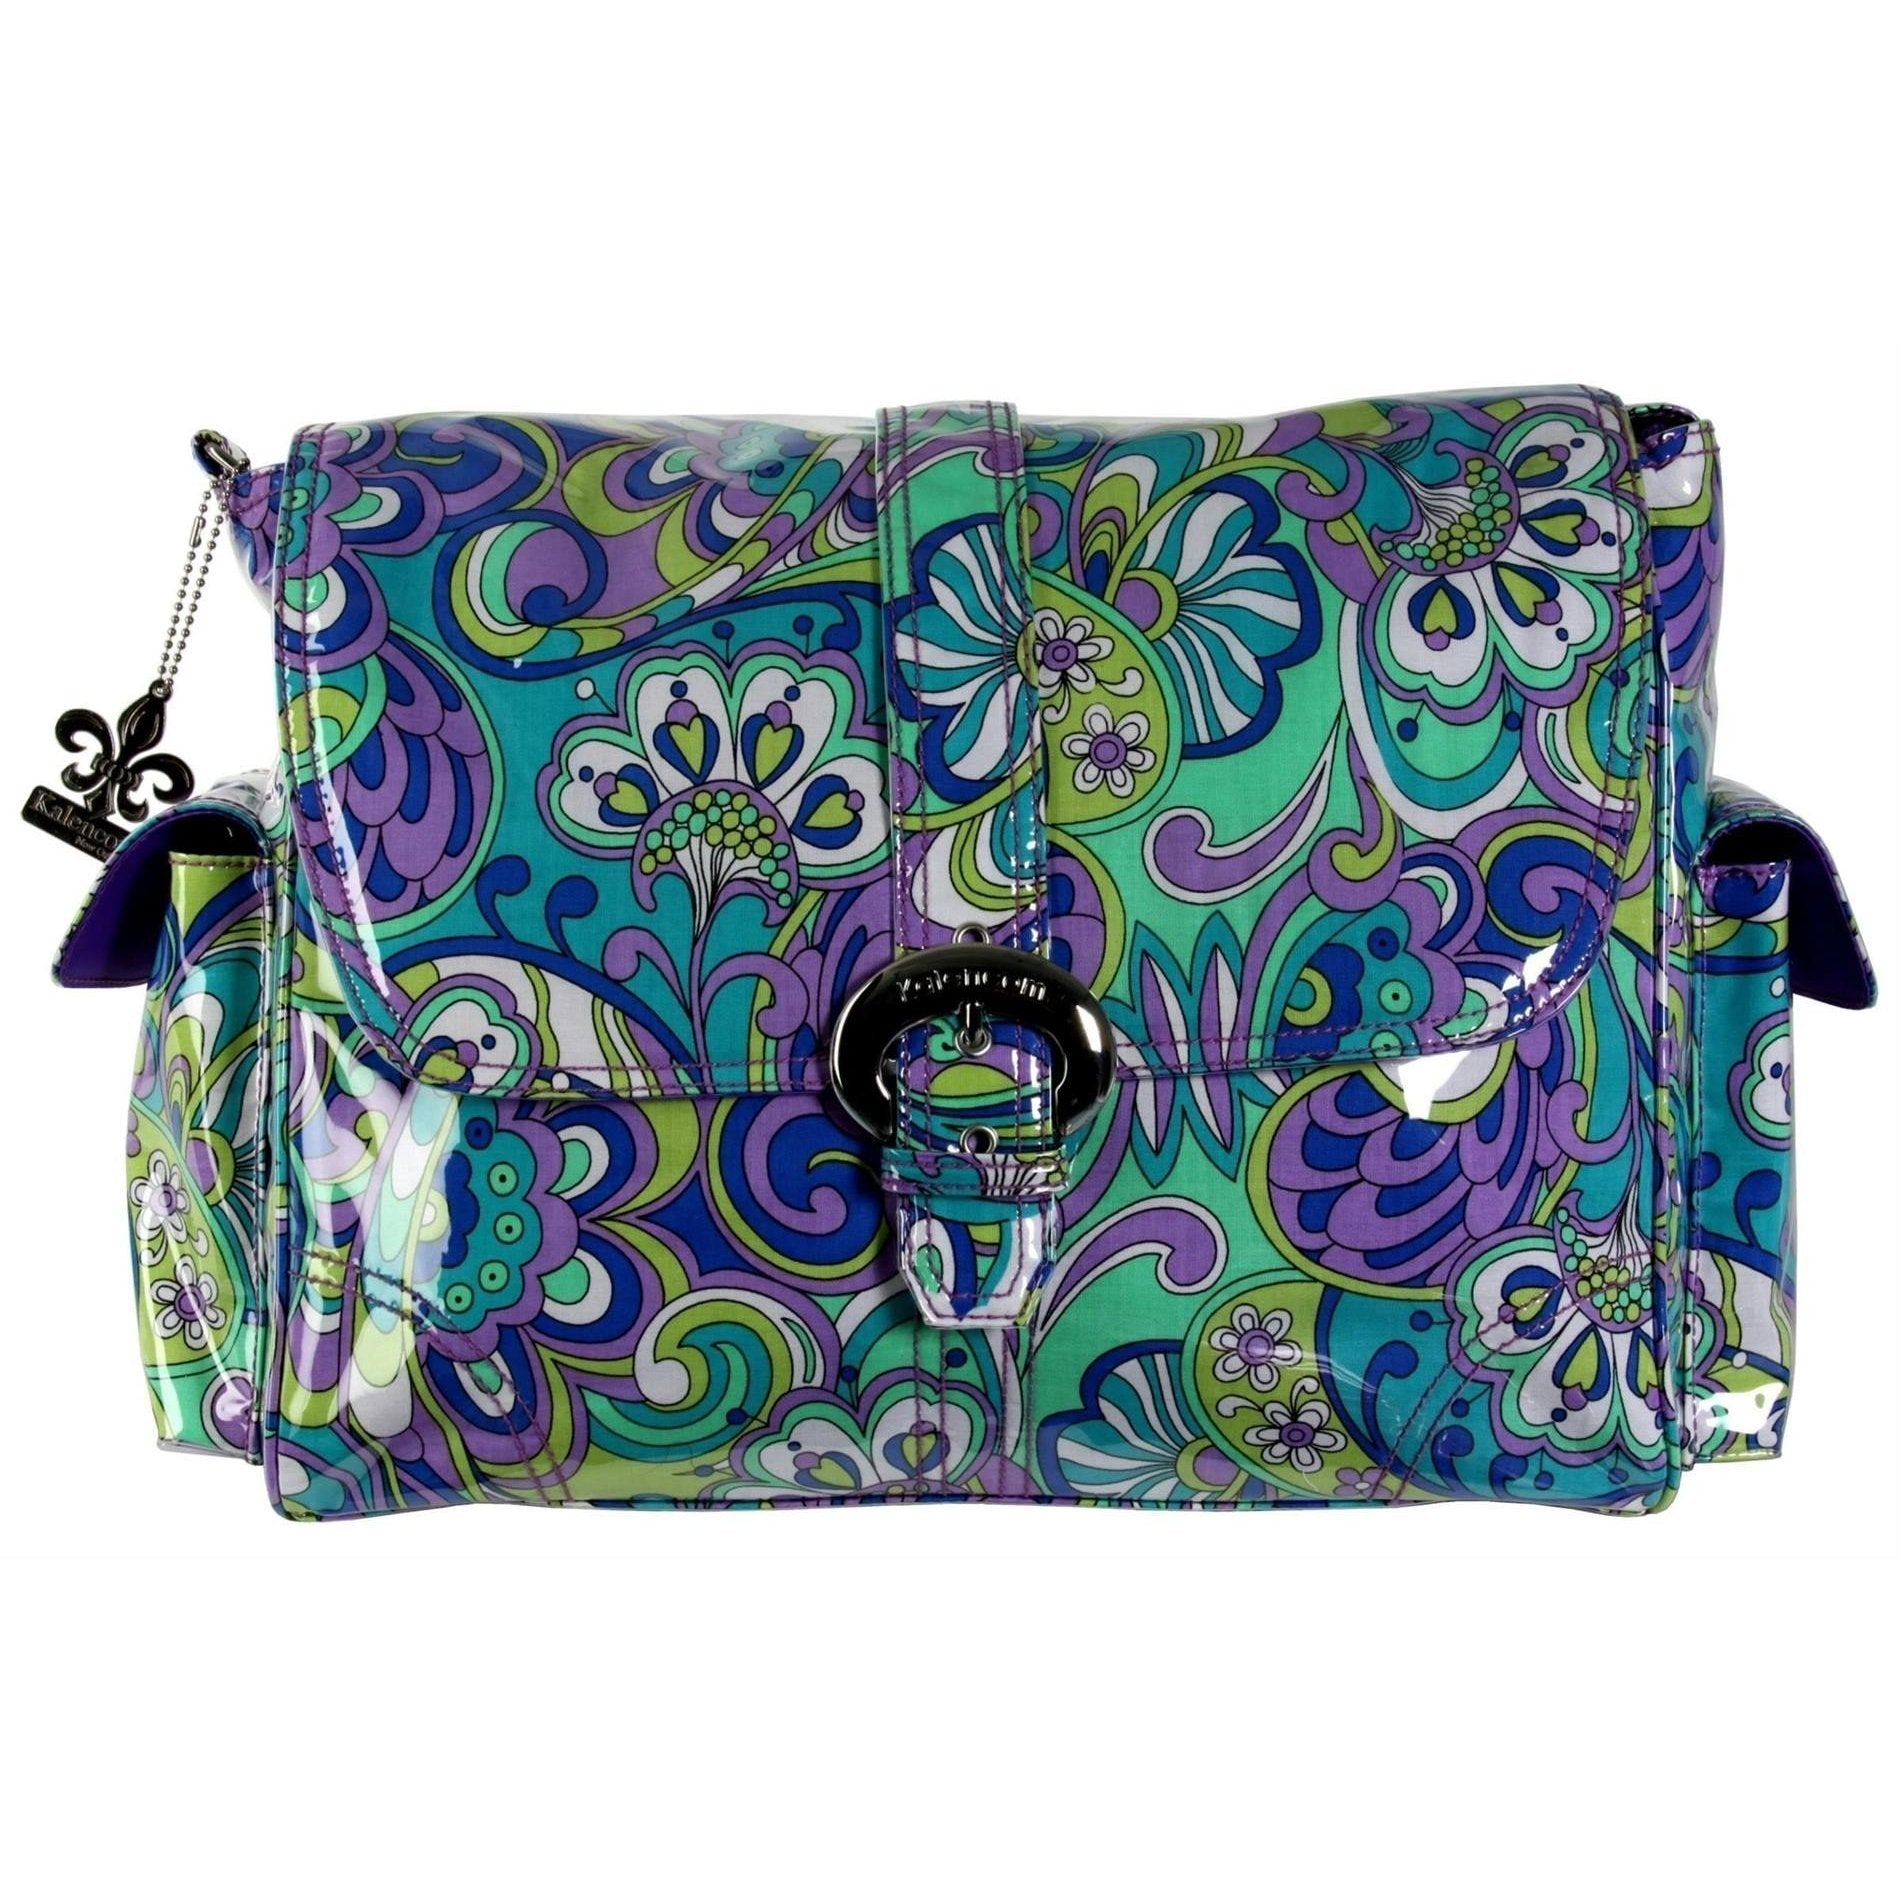 Russian Floral Blue Laminated Buckle Diaper Bag | Style 2960 - Kalencom-Diaper Bags-Default-Jack and Jill Boutique